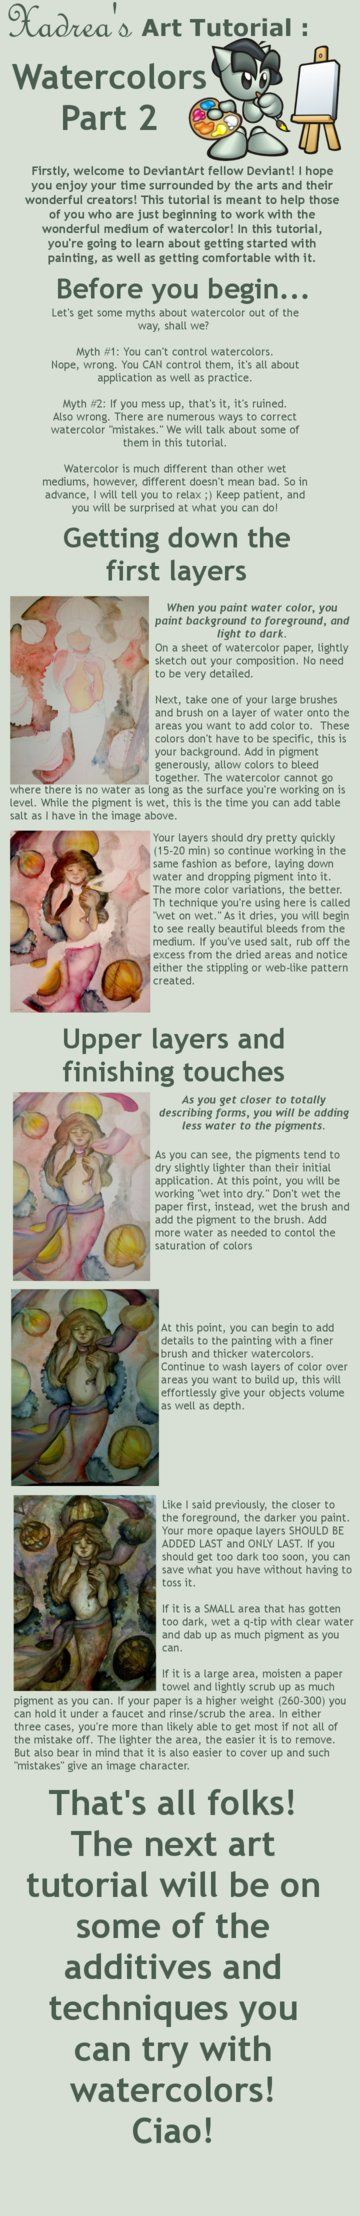 This is the second in the watercolor tutorial series! If you have any other questions, feel free to ask!